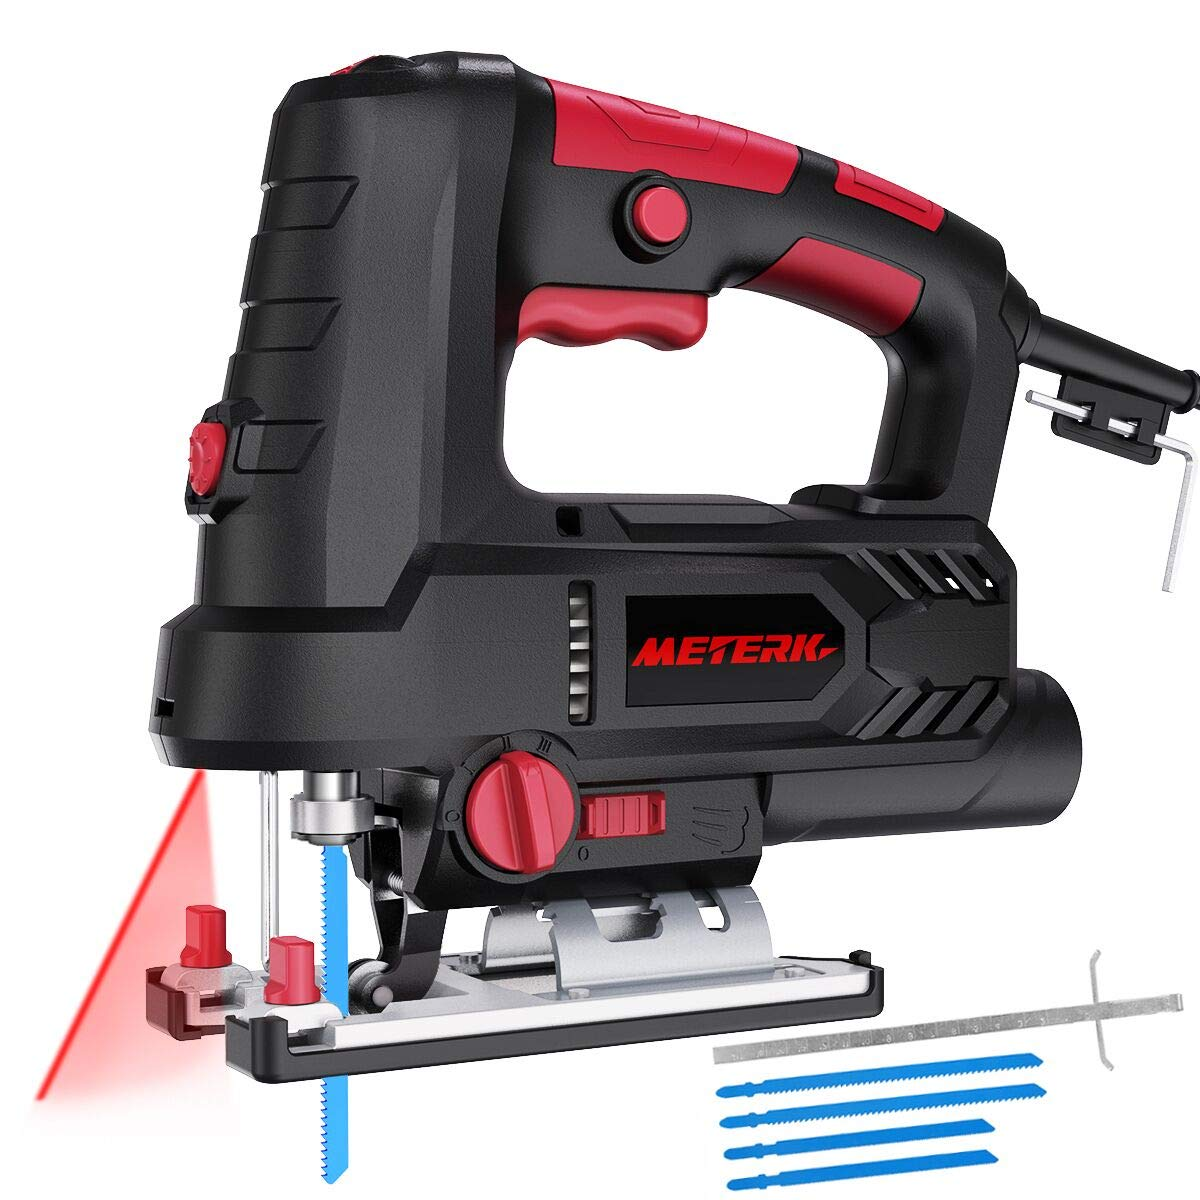 Jigsaw, METERK Upgraded 800W 6.7 Amp 3000 SPM Jig Saw with Laser Guide LED, 6 Variable Speed, 4PCS T-Shank Saw Blades, Scale Ruler, 78.74 Inches Cord, 45 Bevel Cutting Angle